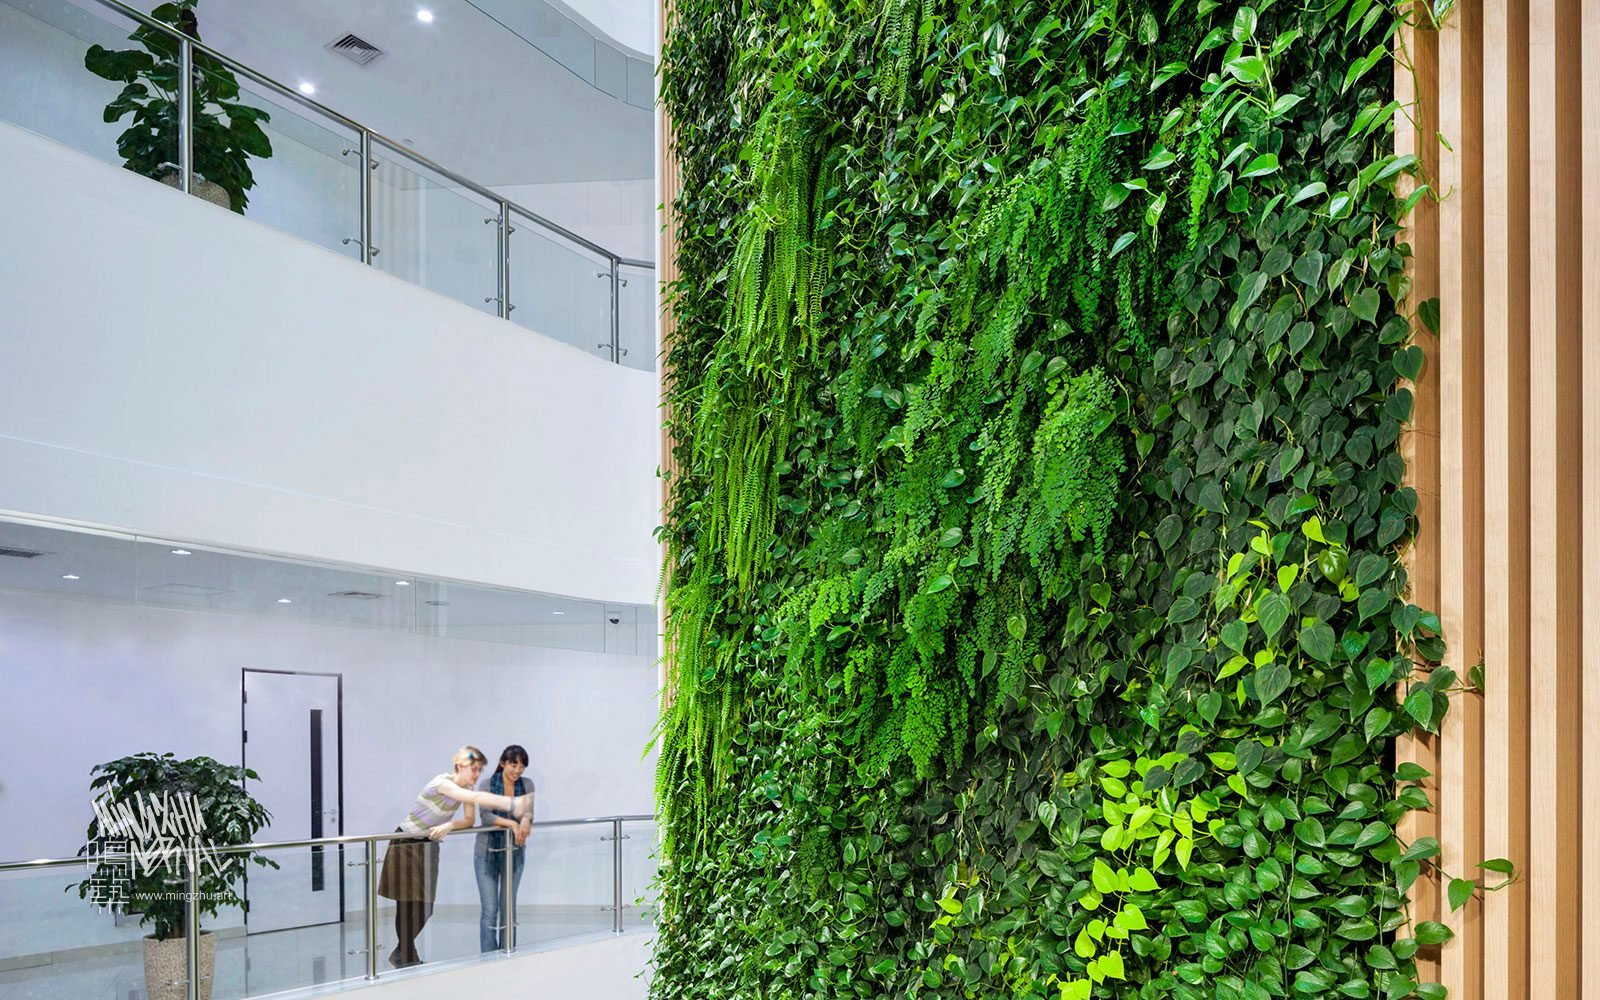 """At Mingzhu Nerval, we thrive at creating the most beautiful vertical gardens in the world. For SAP, we created a """"waterfall"""" living wall design - Shanghai, 2012."""